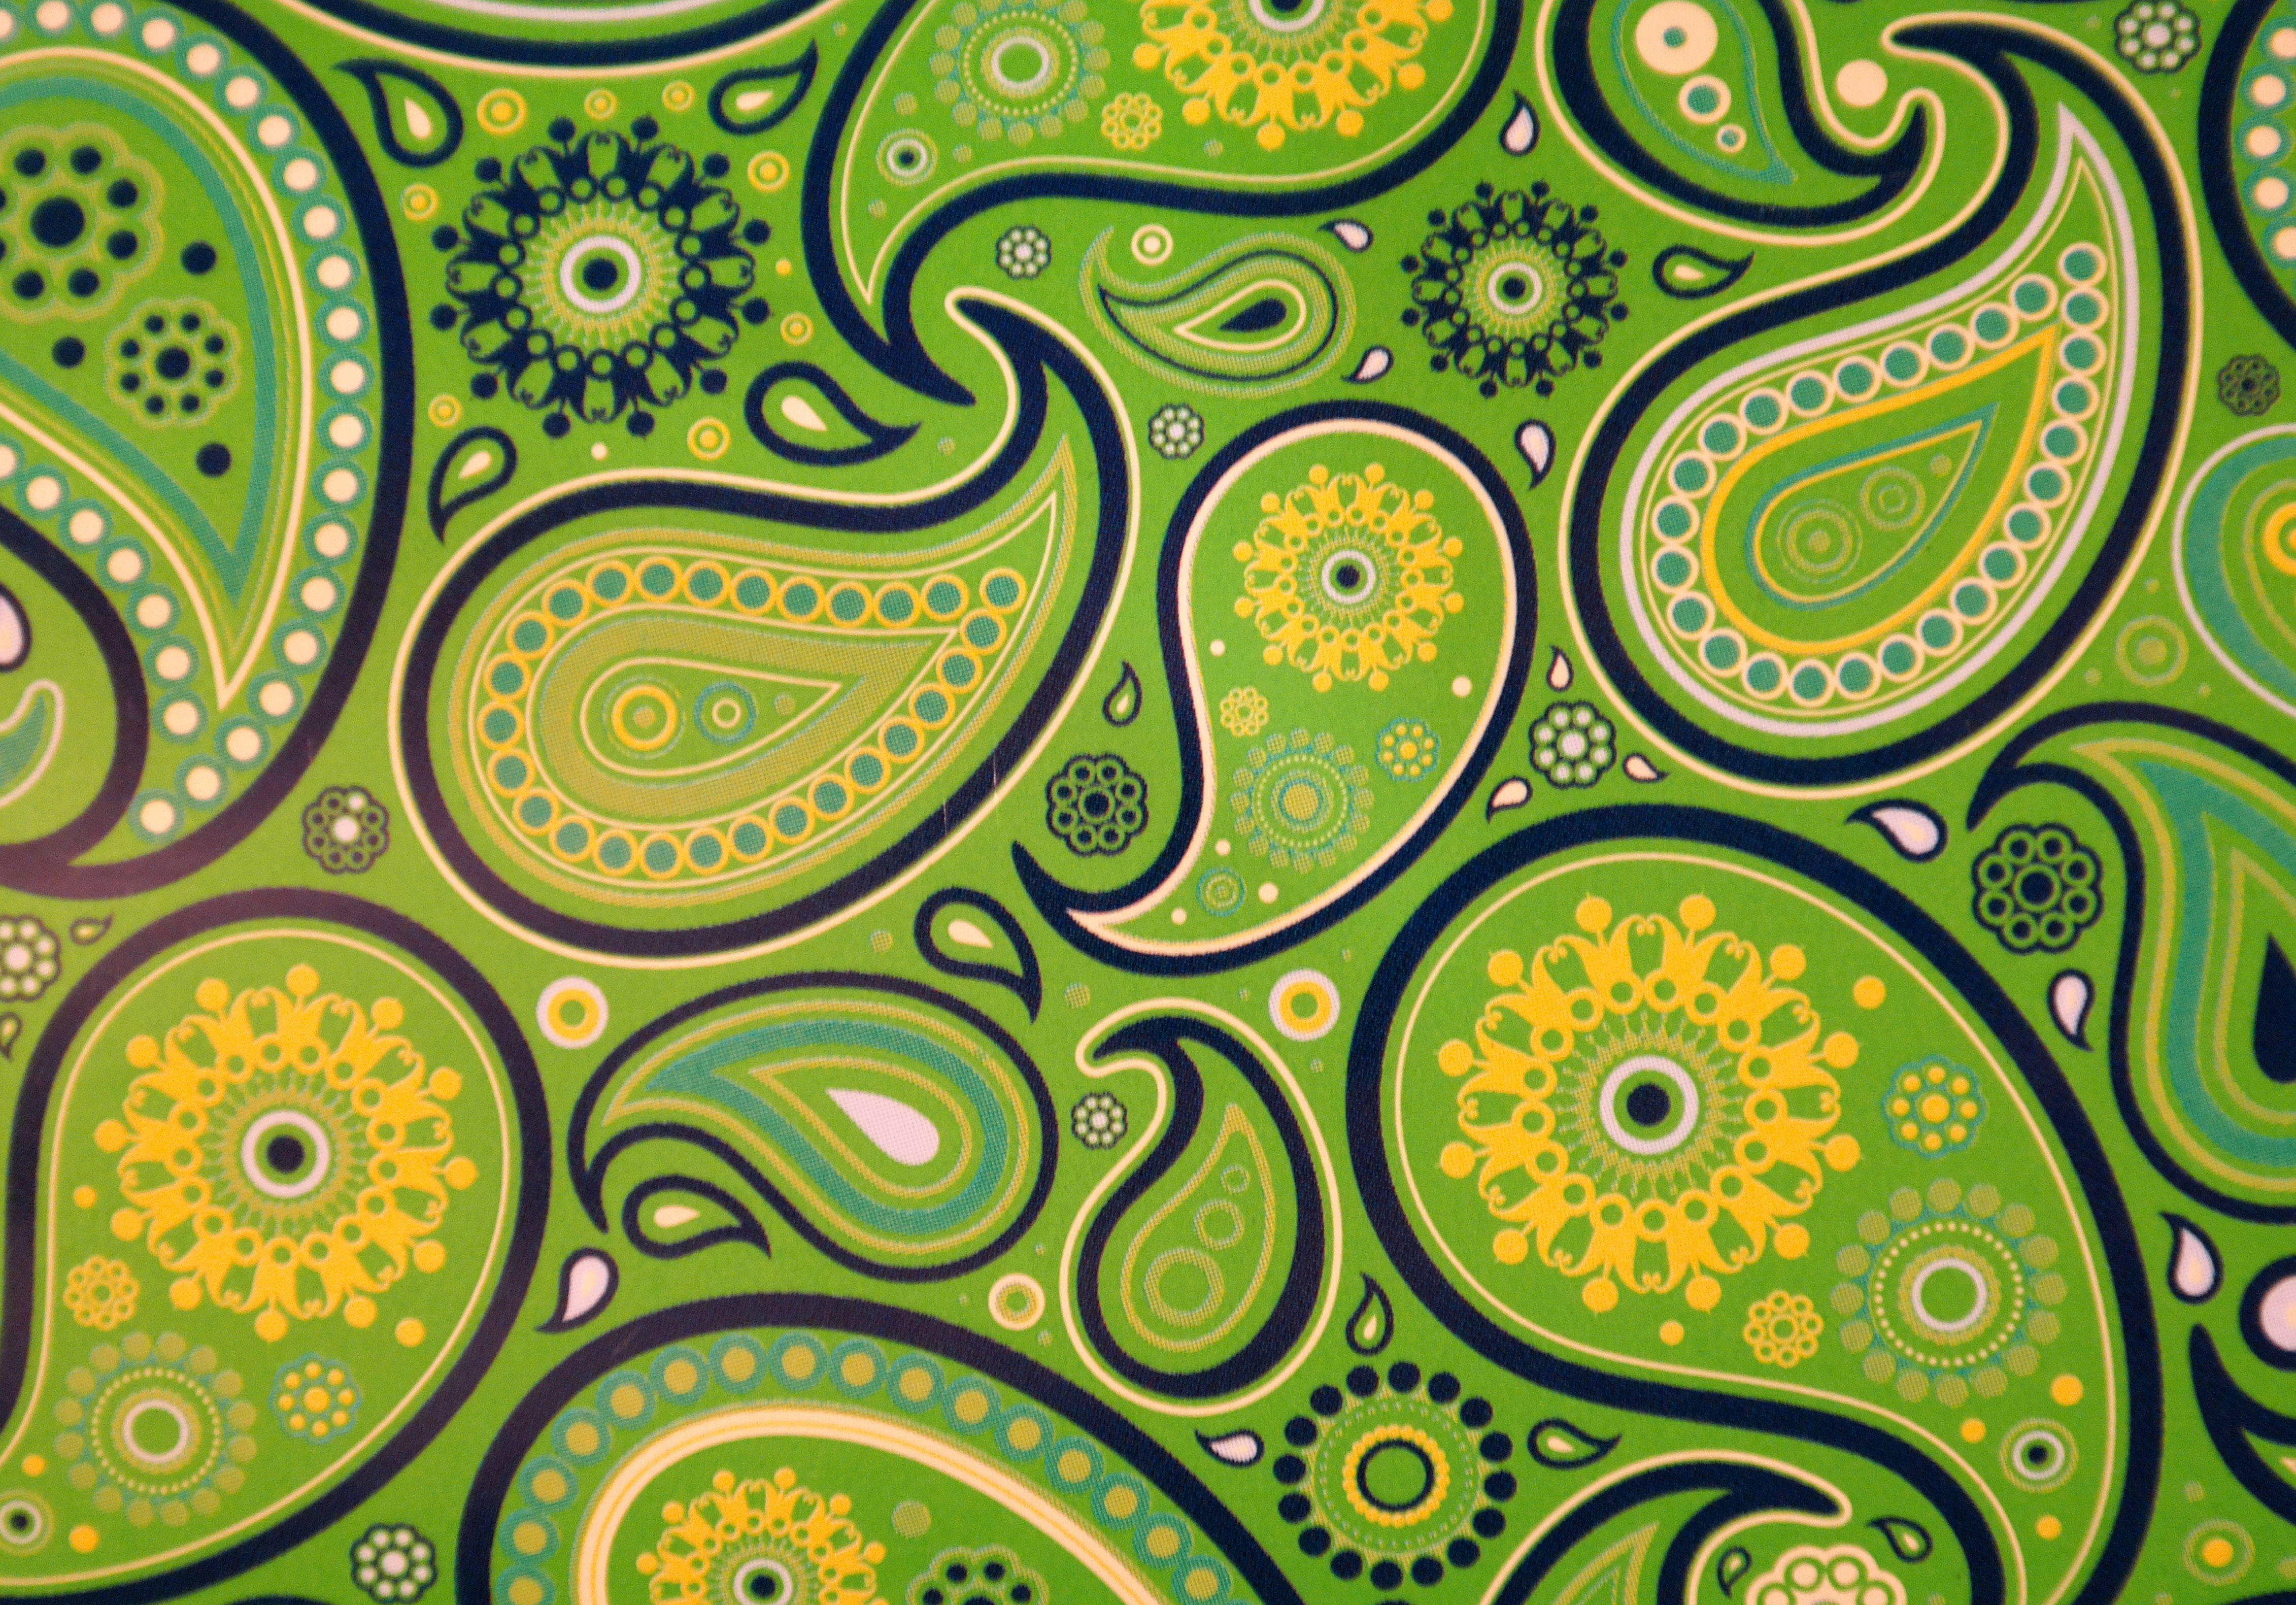 Green Pattern And Design Background Image Free Stock